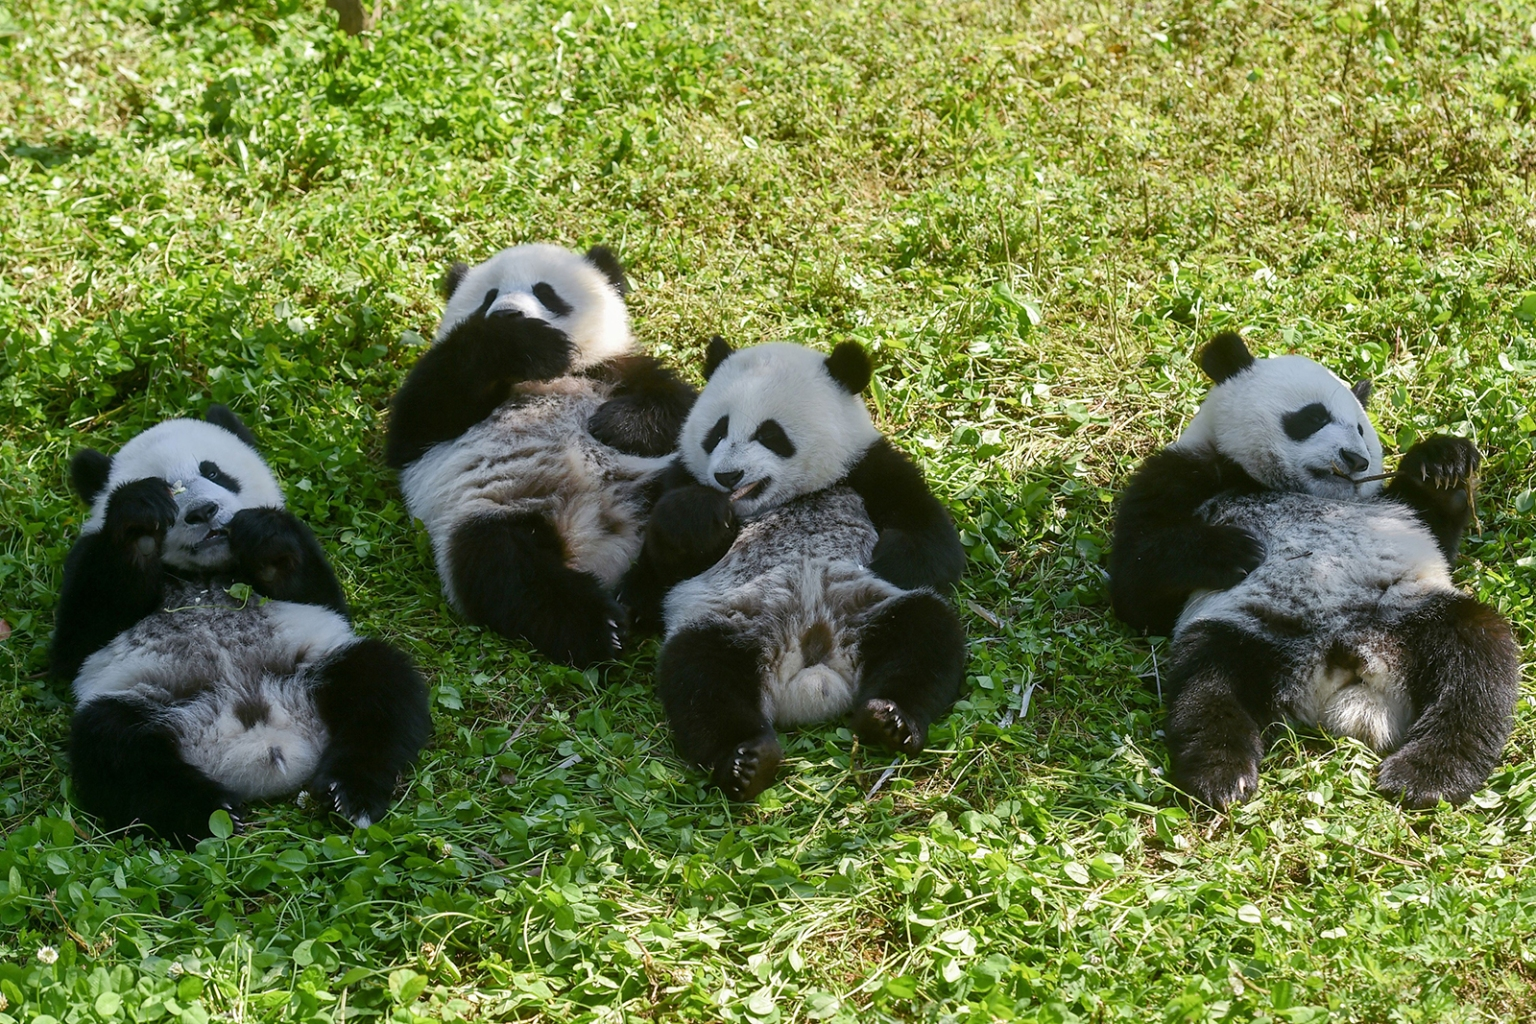 Nearly 1-year-old cubs roll on the grass at the Wolong National Nature Reserve in Wenchuan, in China's southwestern Sichuan province, on June 13. Born to a wild father and captive mother, the cubs birth mark an important achievement in preservation of the country's beloved animal. STR/AFP/Getty Images